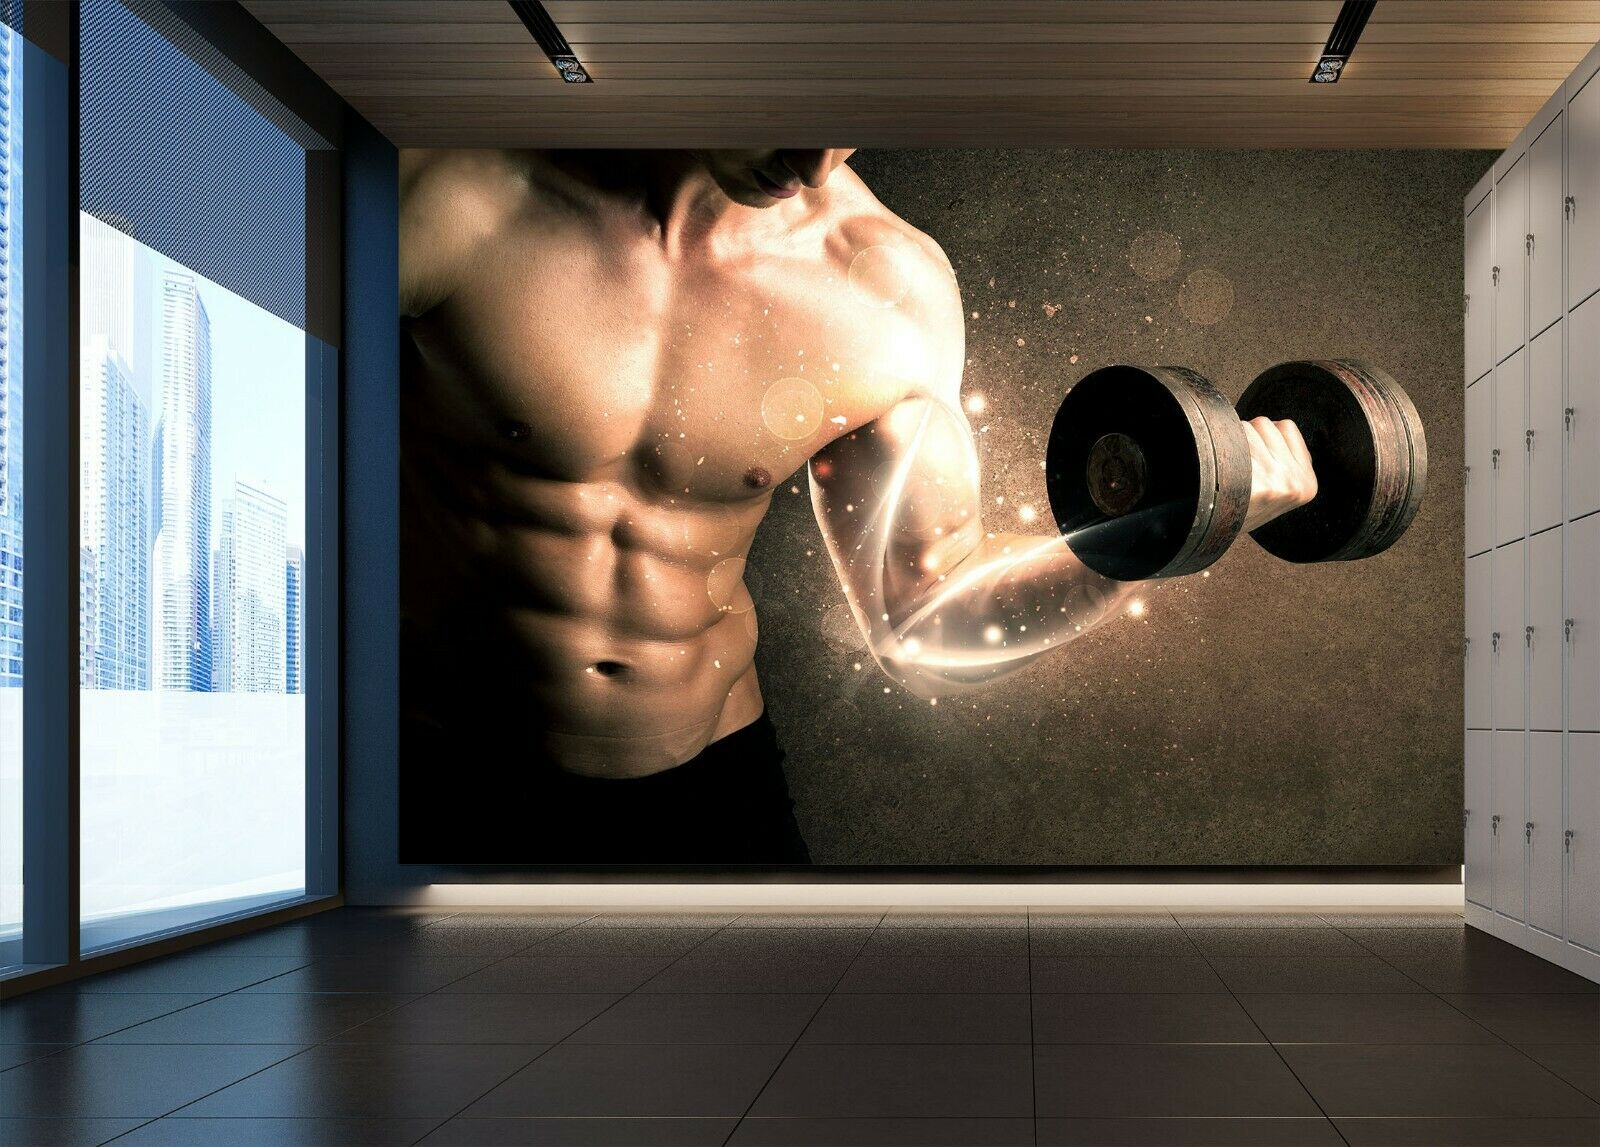 3D Muscle Dumbbell R19 Business Wallpaper Wall Mural Self-adhesive Commerce An